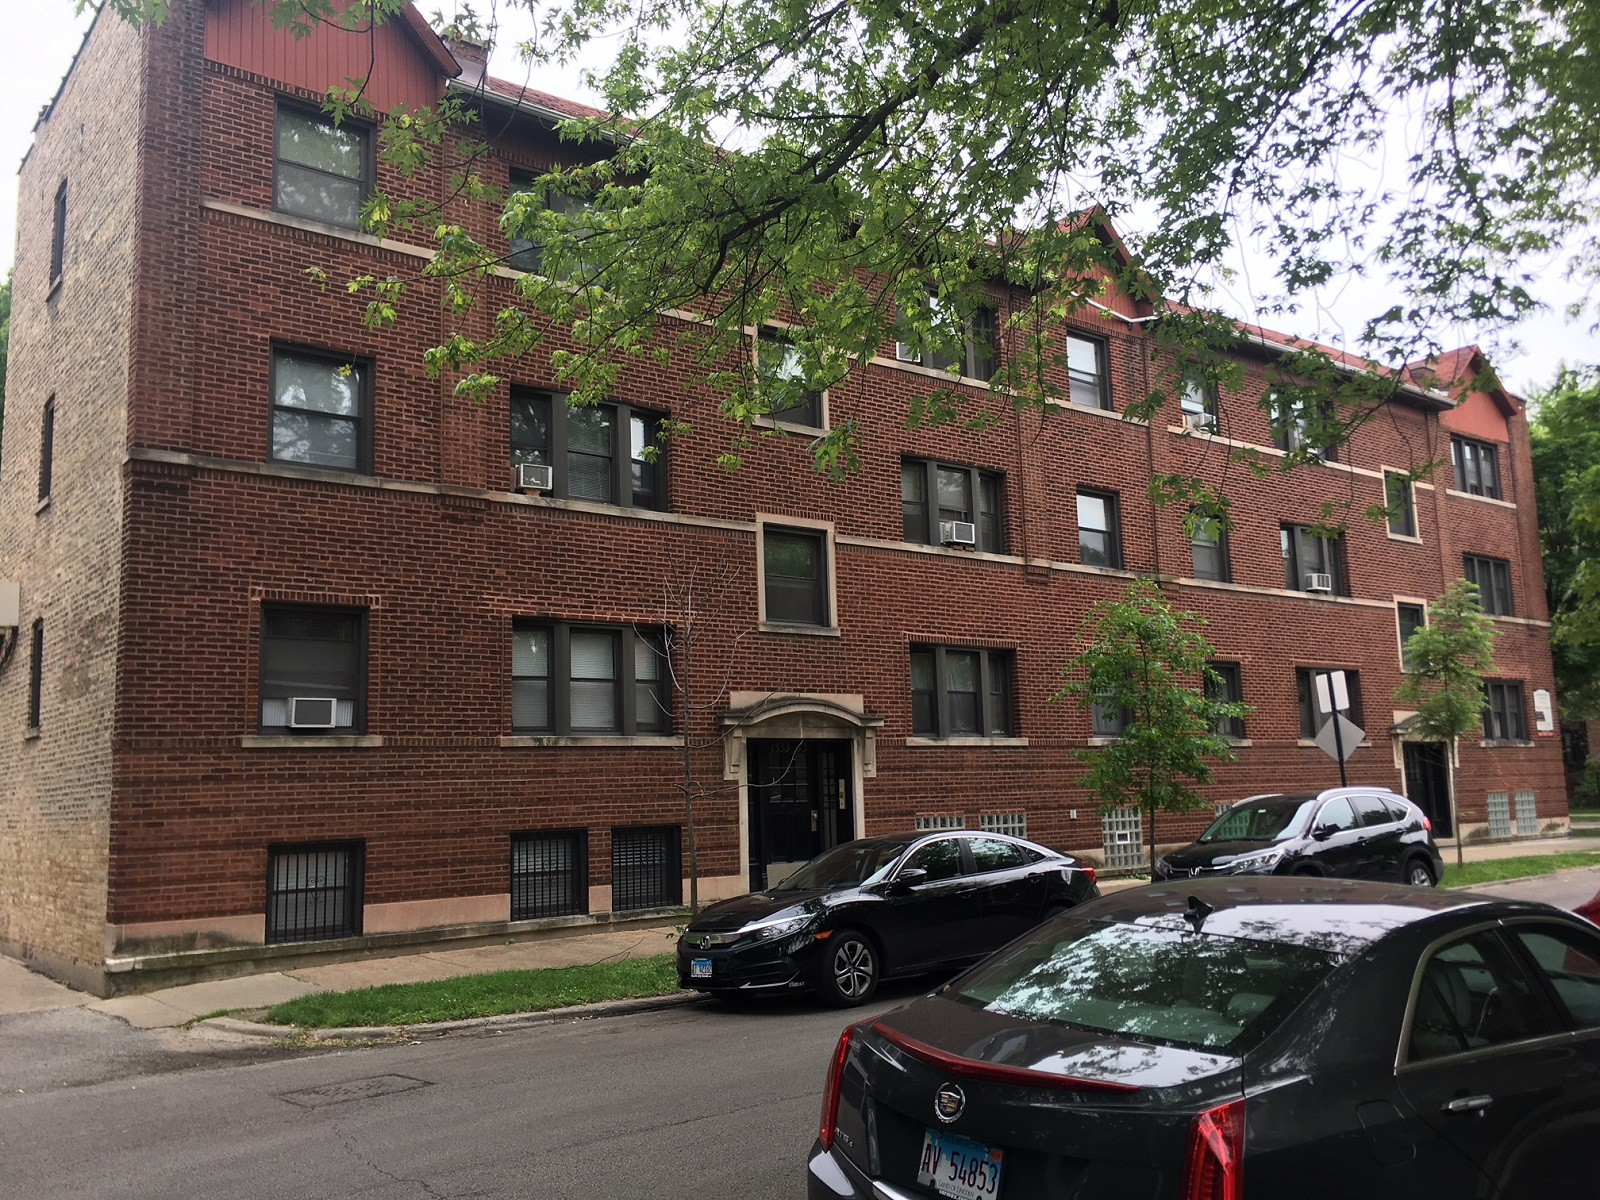 1352-58 W. Early/1333-41 Ardmore